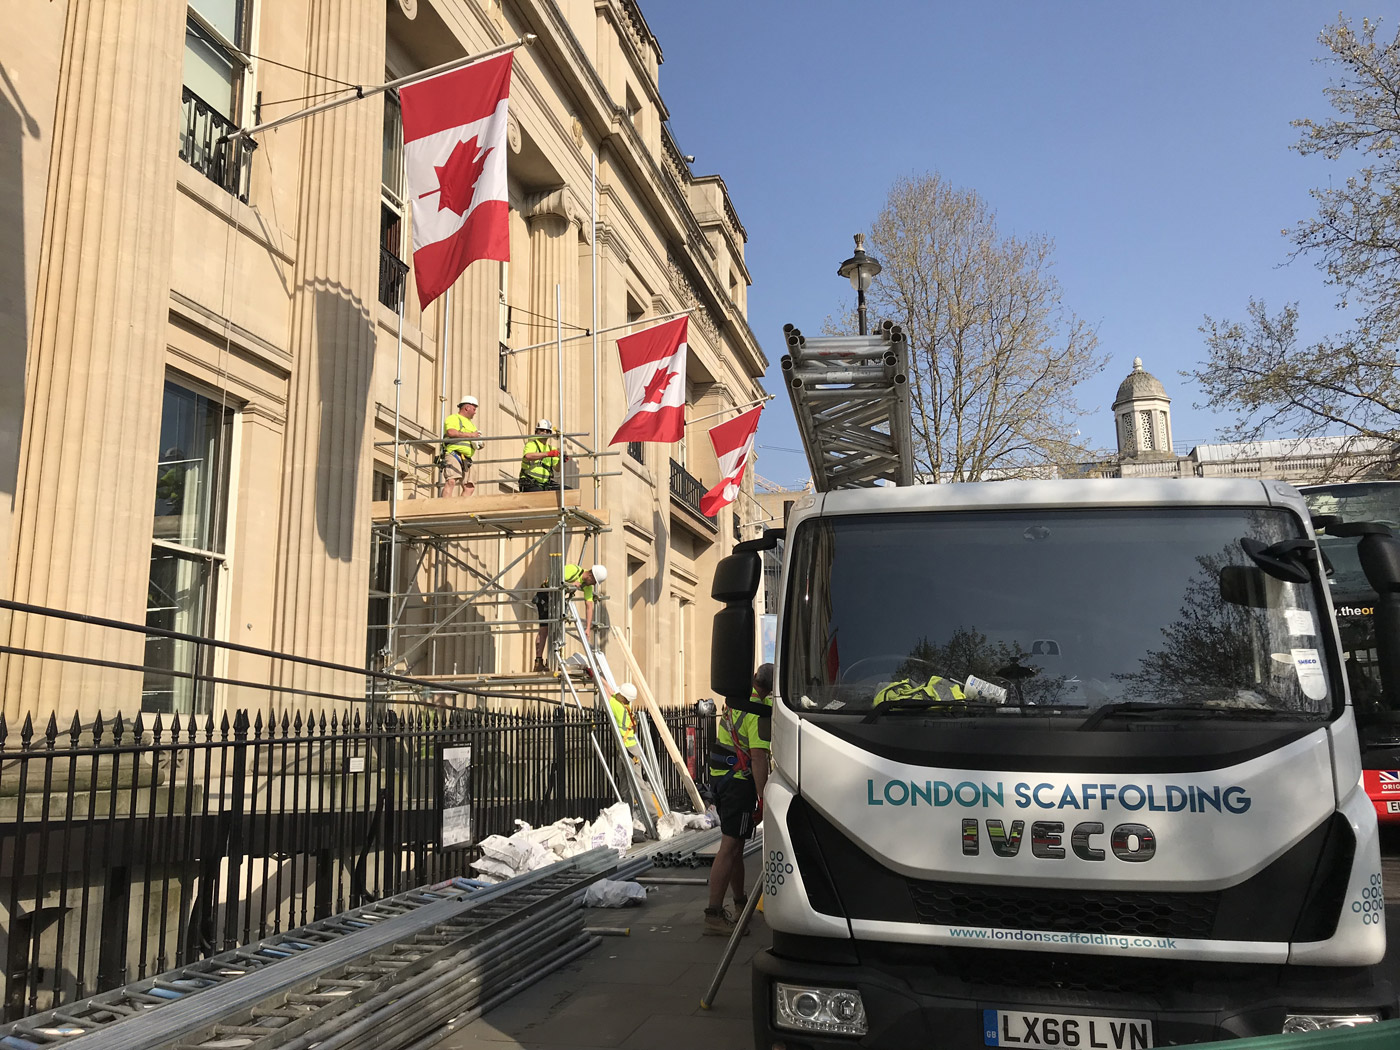 London-Scaffolding-Canadian-Embassy-Outside.jpg